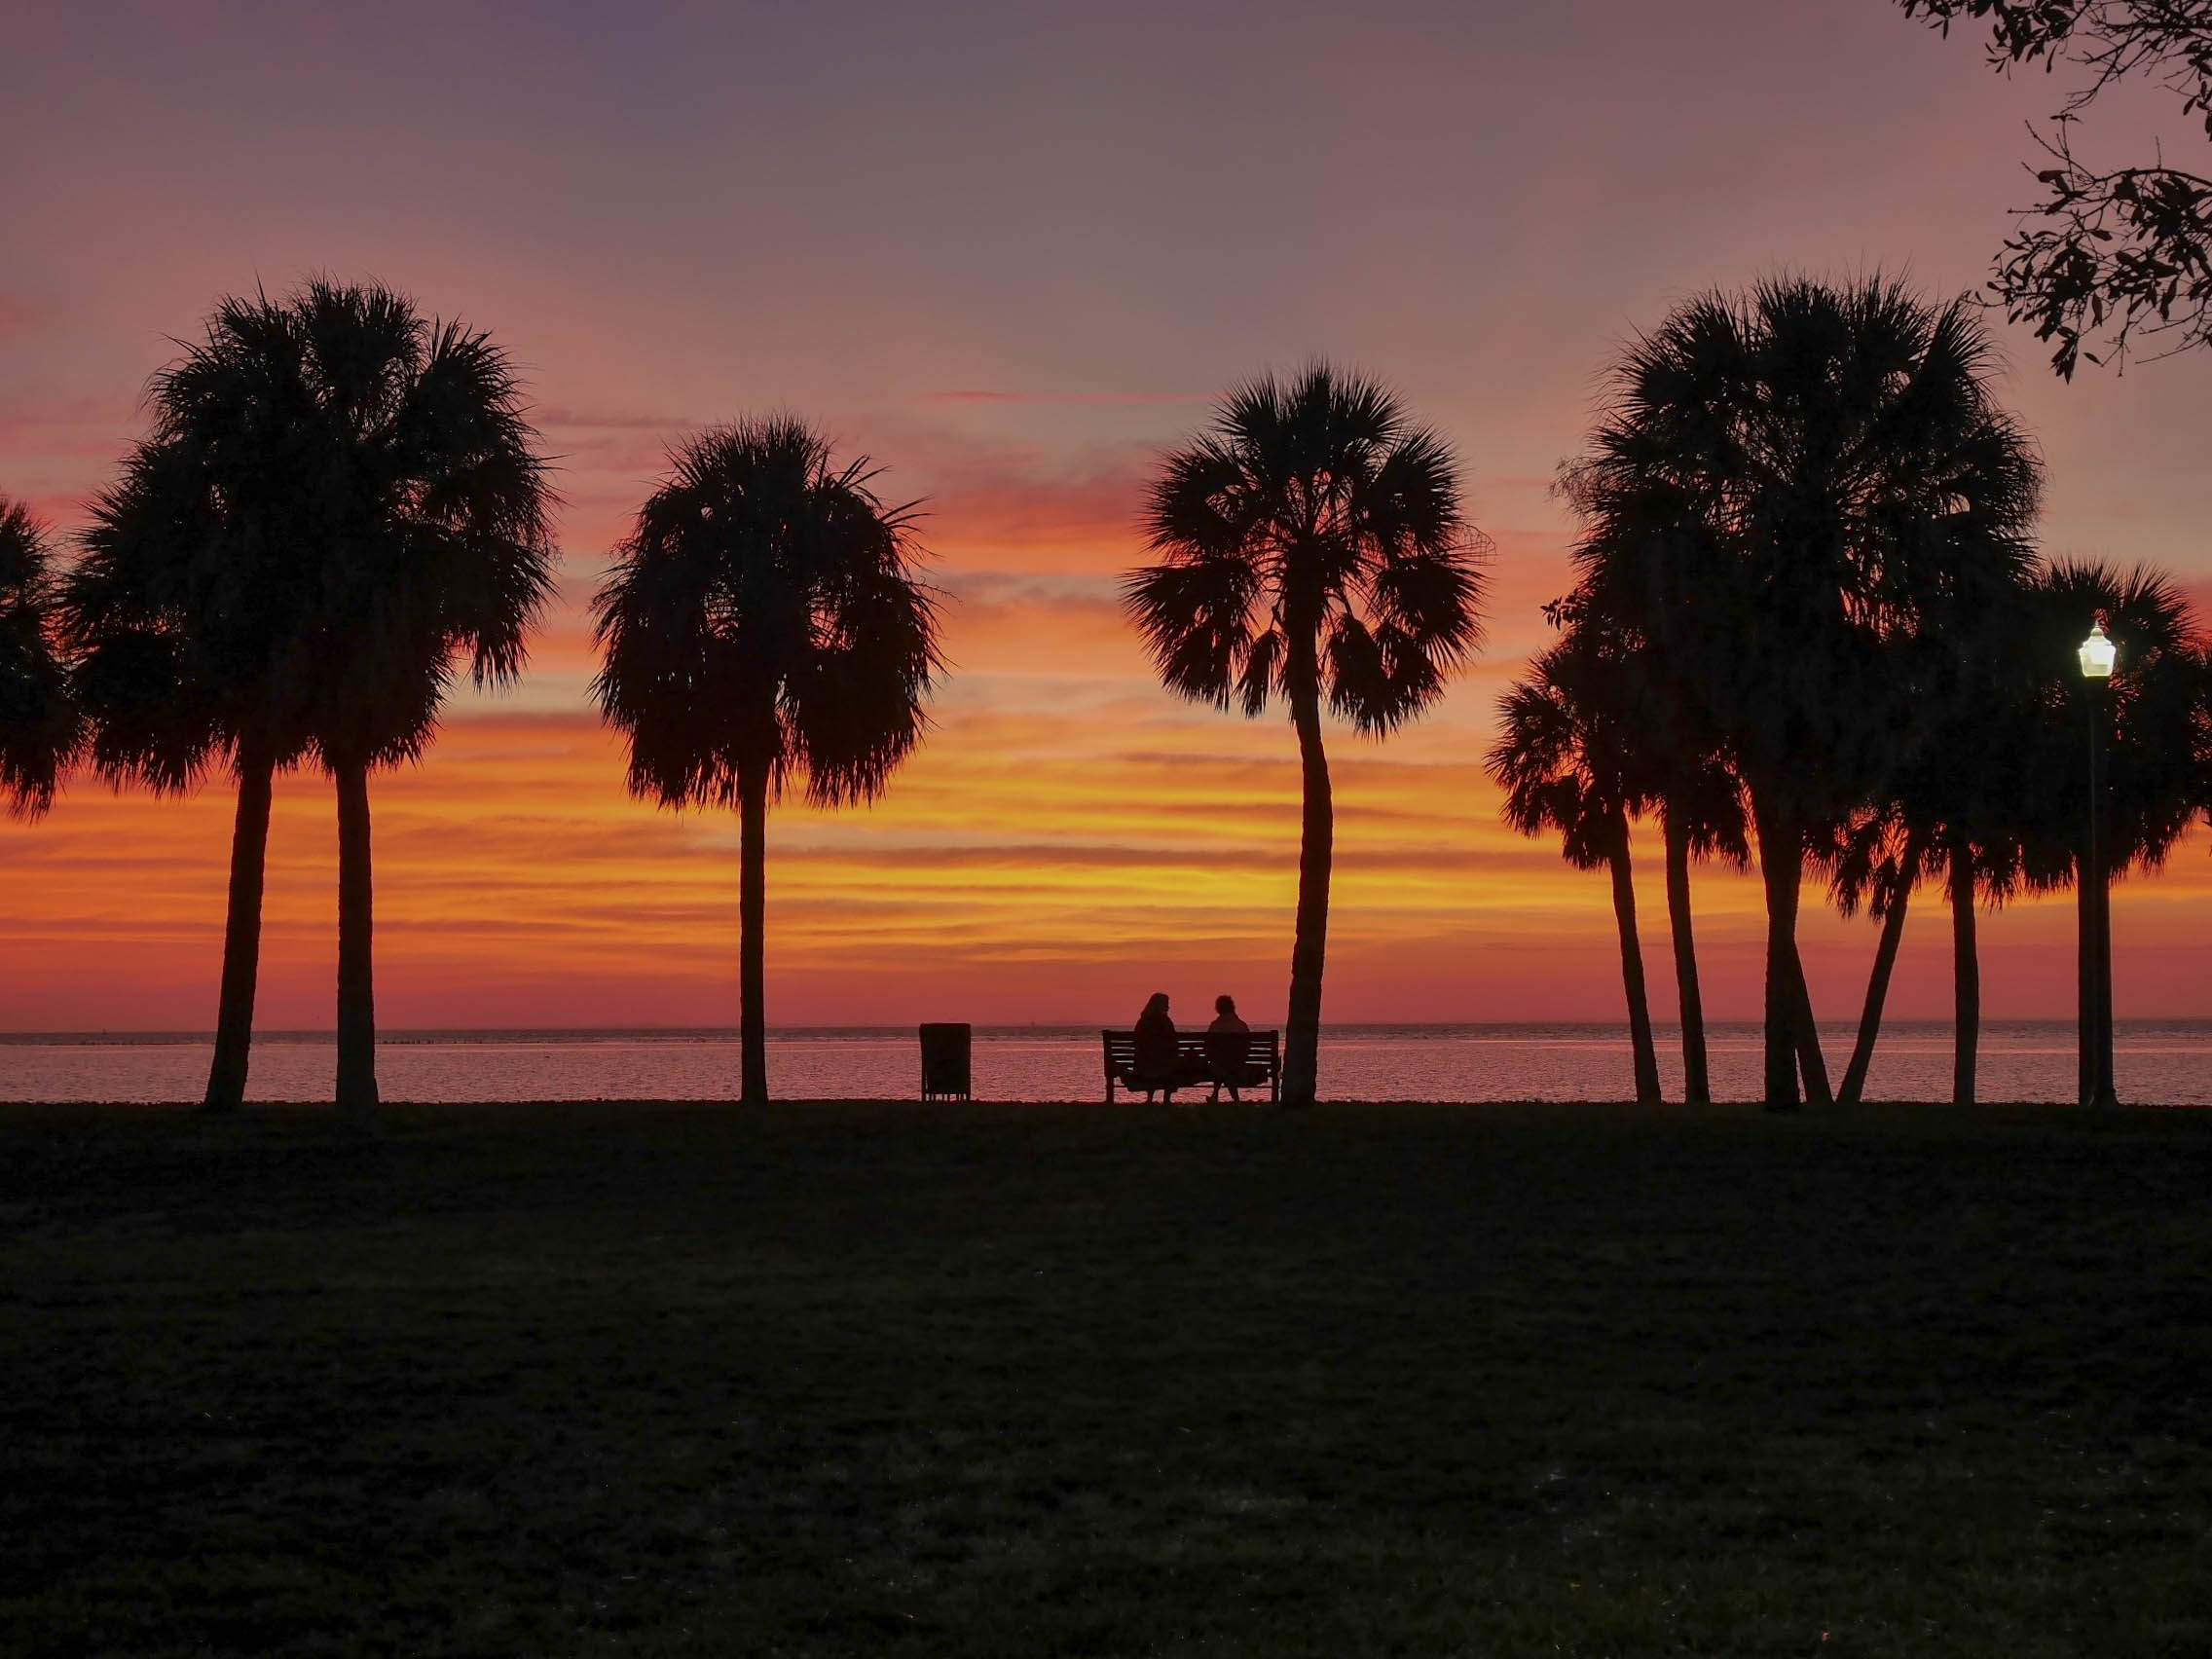 North Shore Park, St. Pete, FL